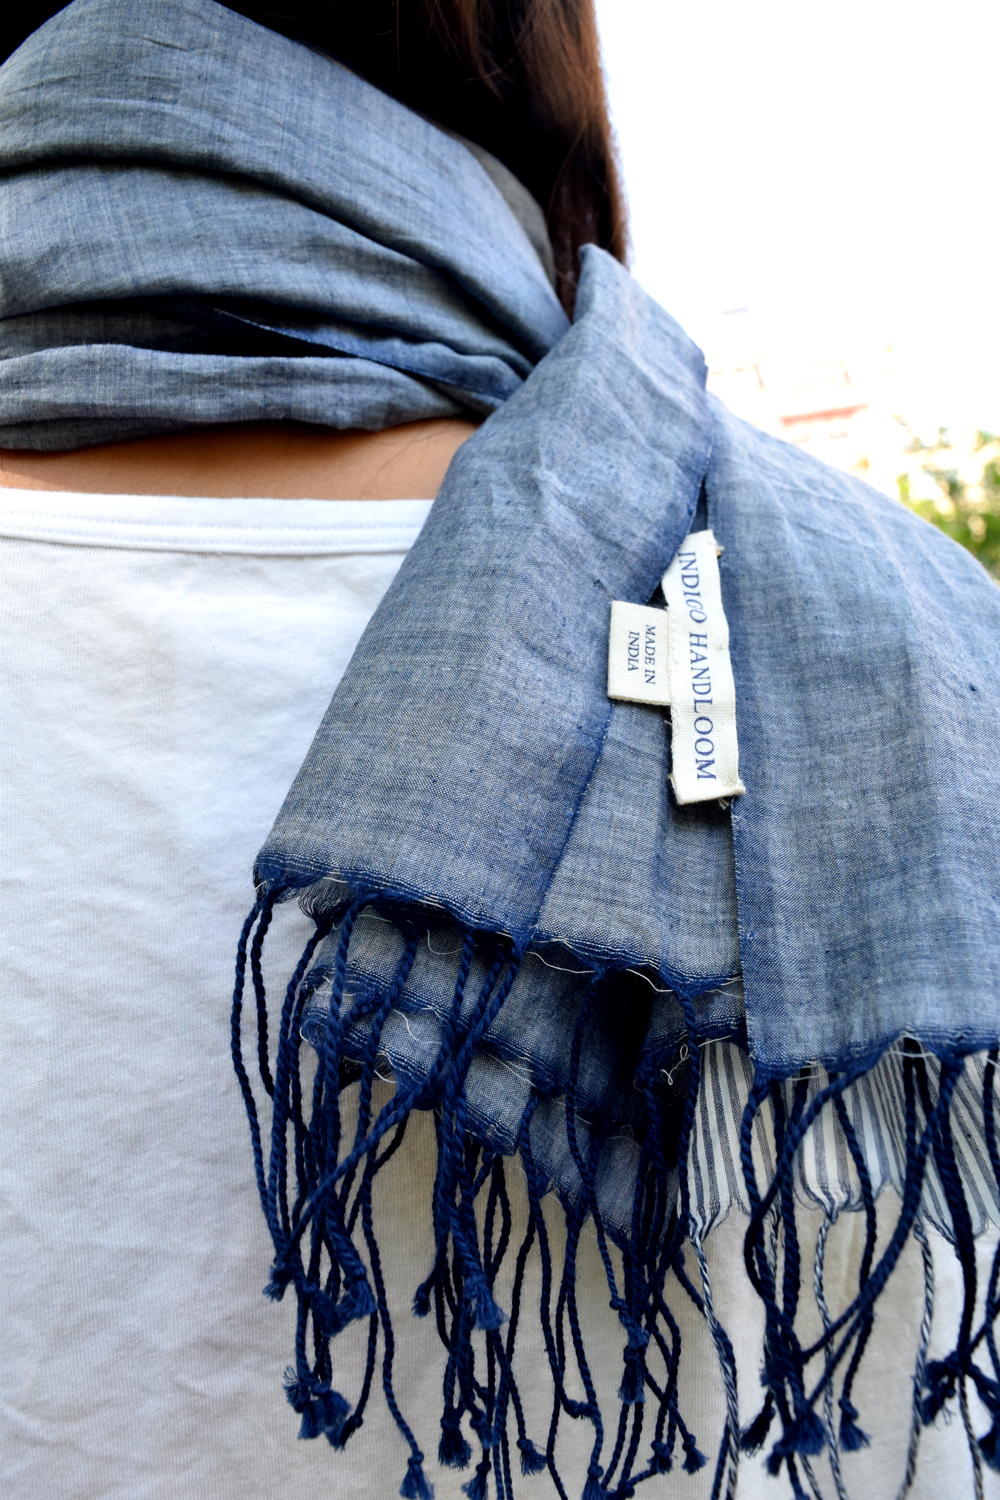 Indigo Handloom Faded Denim navy scarf, sustainable fashion accessories product review fayelessler.com Faye Lessler